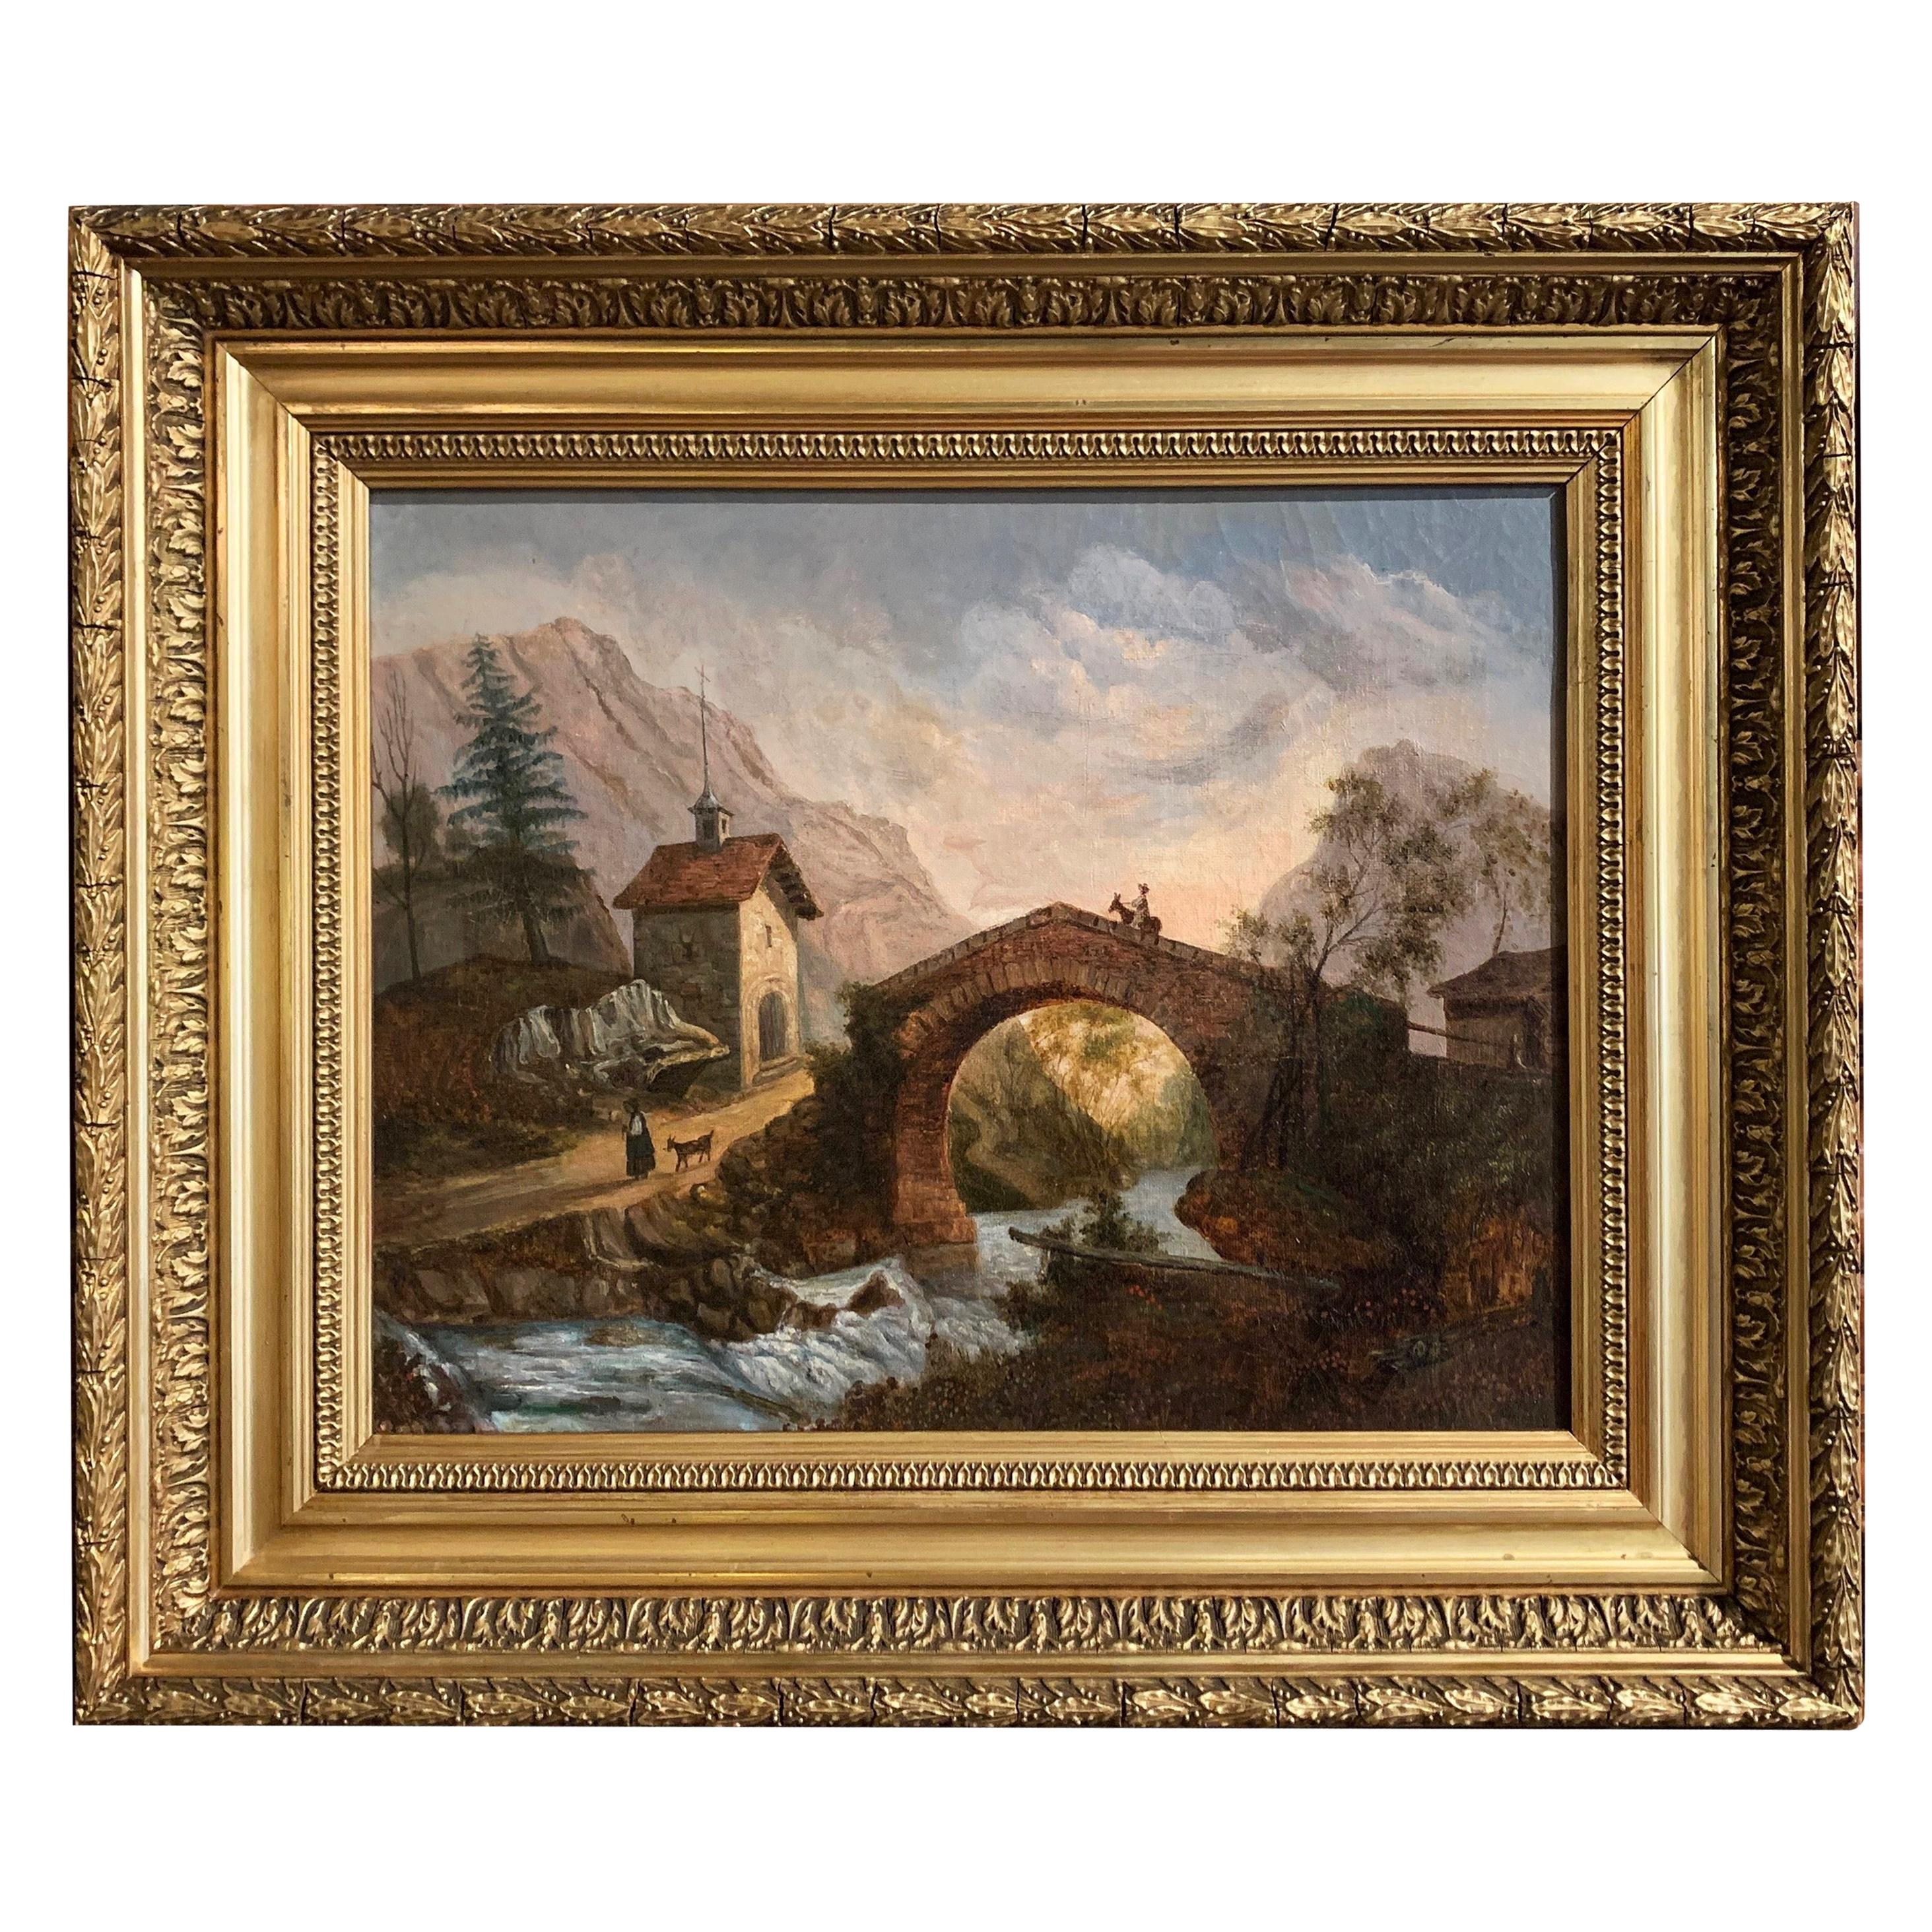 19th Century French Oil on Canvas Landscape Painting in Carved Gilt Frame